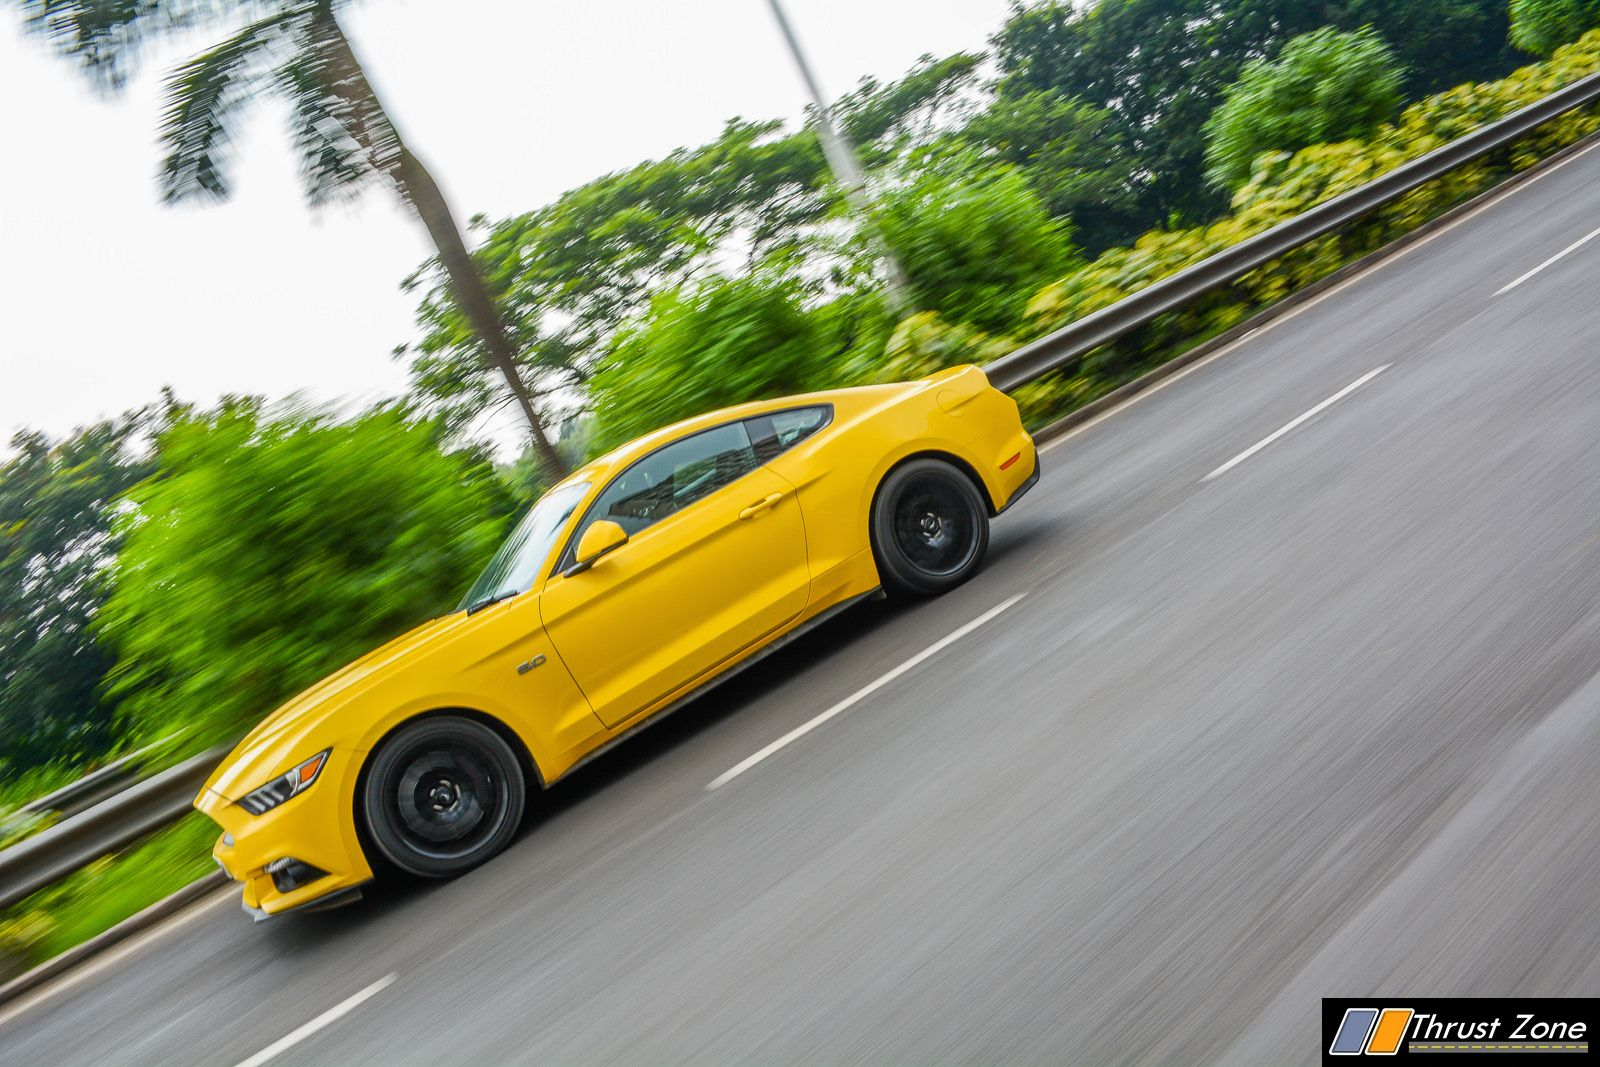 https://www.thrustzone.com/wp-content/uploads/2018/09/Ford-Mustang-India-V8-Review-15.jpg